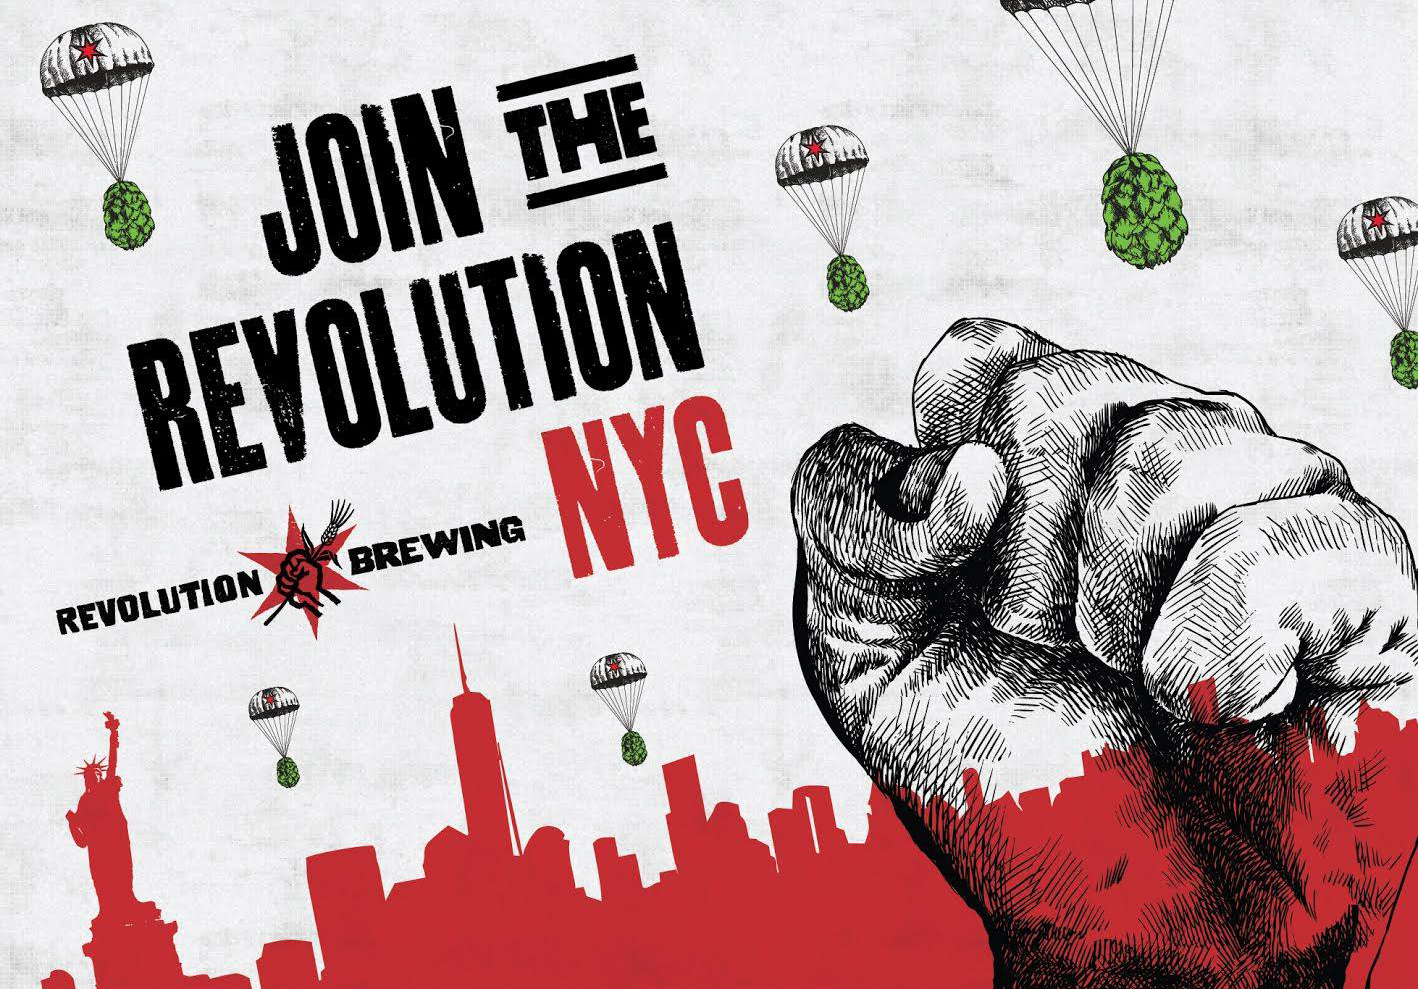 Revolution-Brewing-Expands-Distribution-to-NYC.jpg